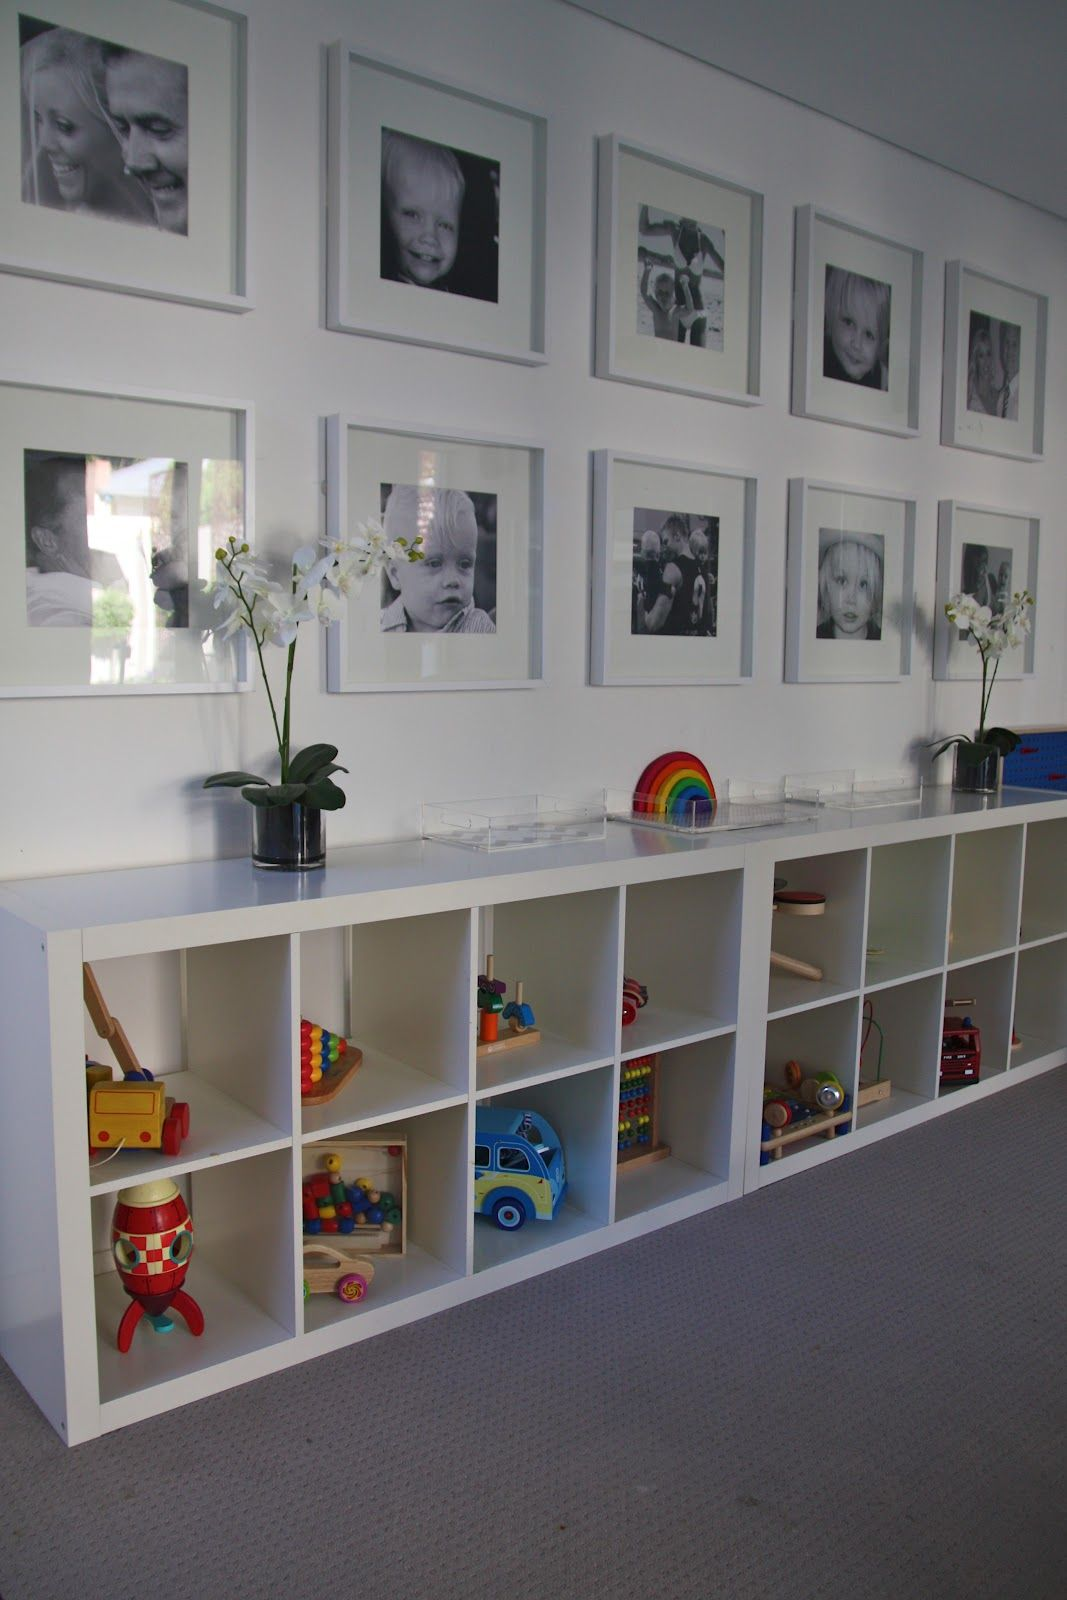 Unique Wall Unit For Drawing Room Homedecoration: Bookcase For Storage And Bench, Black And White Photos